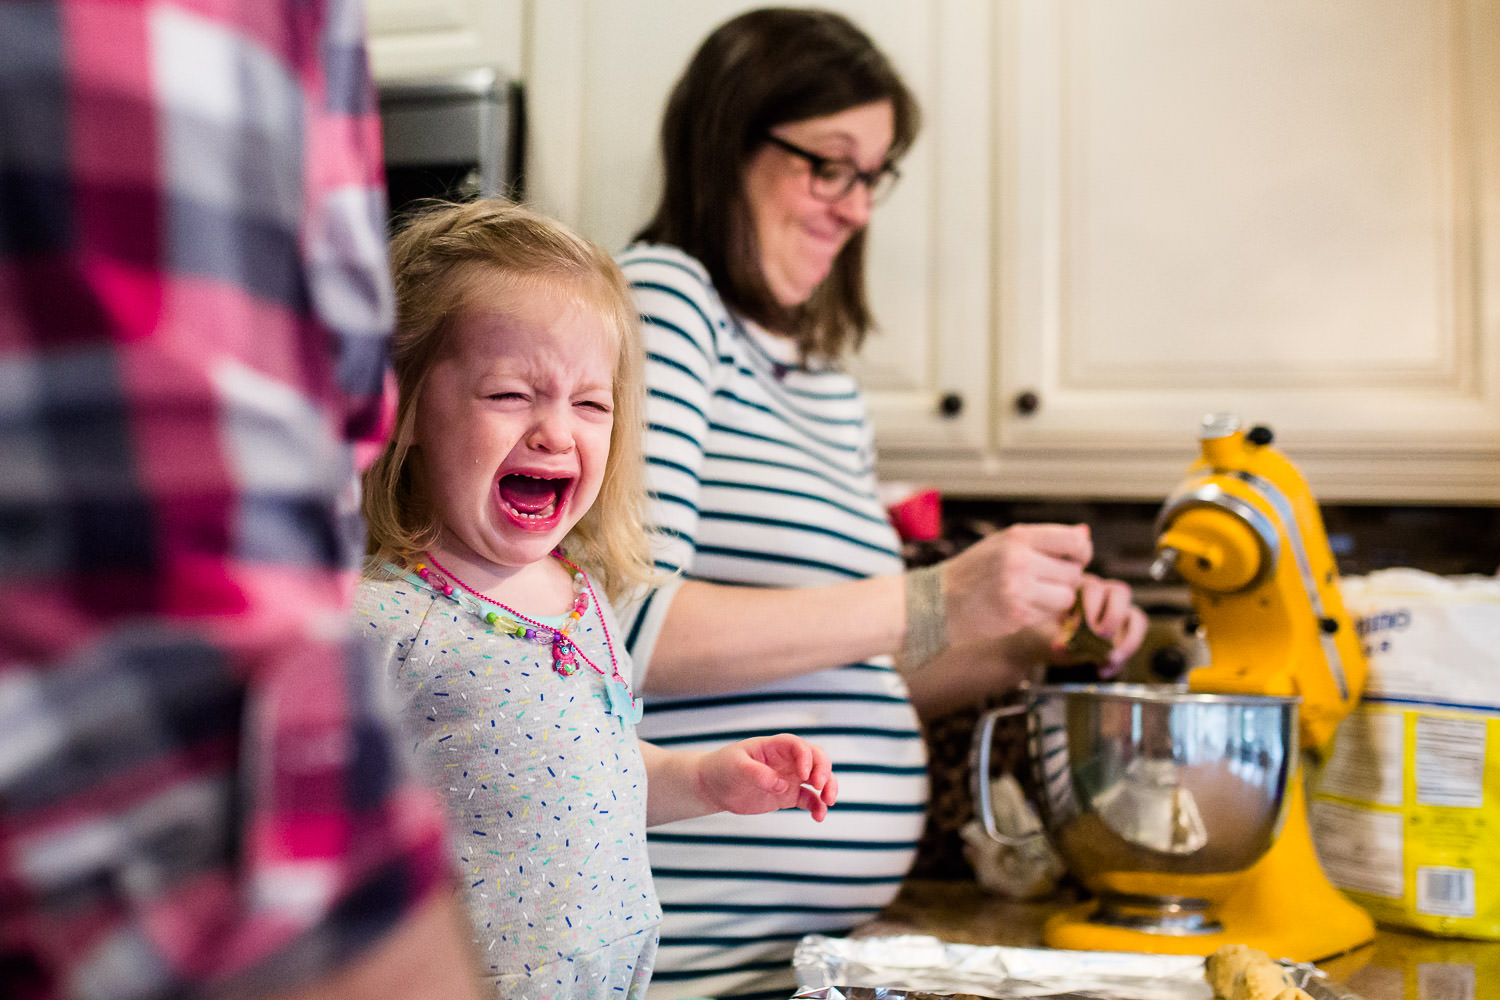 lifestyle photo of little girl crying at kitchen counter